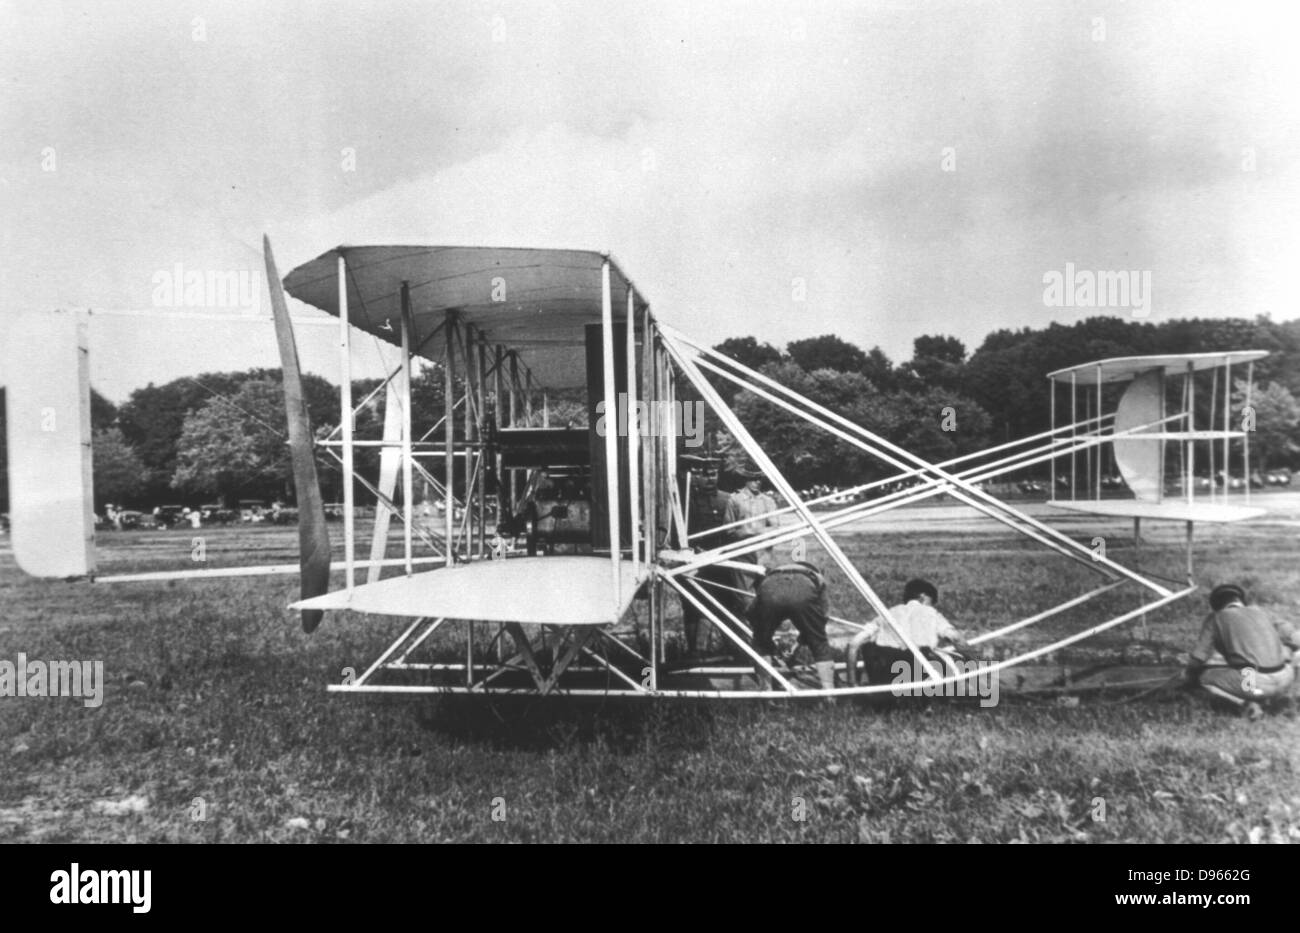 Wright Brothers' Military Flyer of 1909. Photograph. - Stock Image